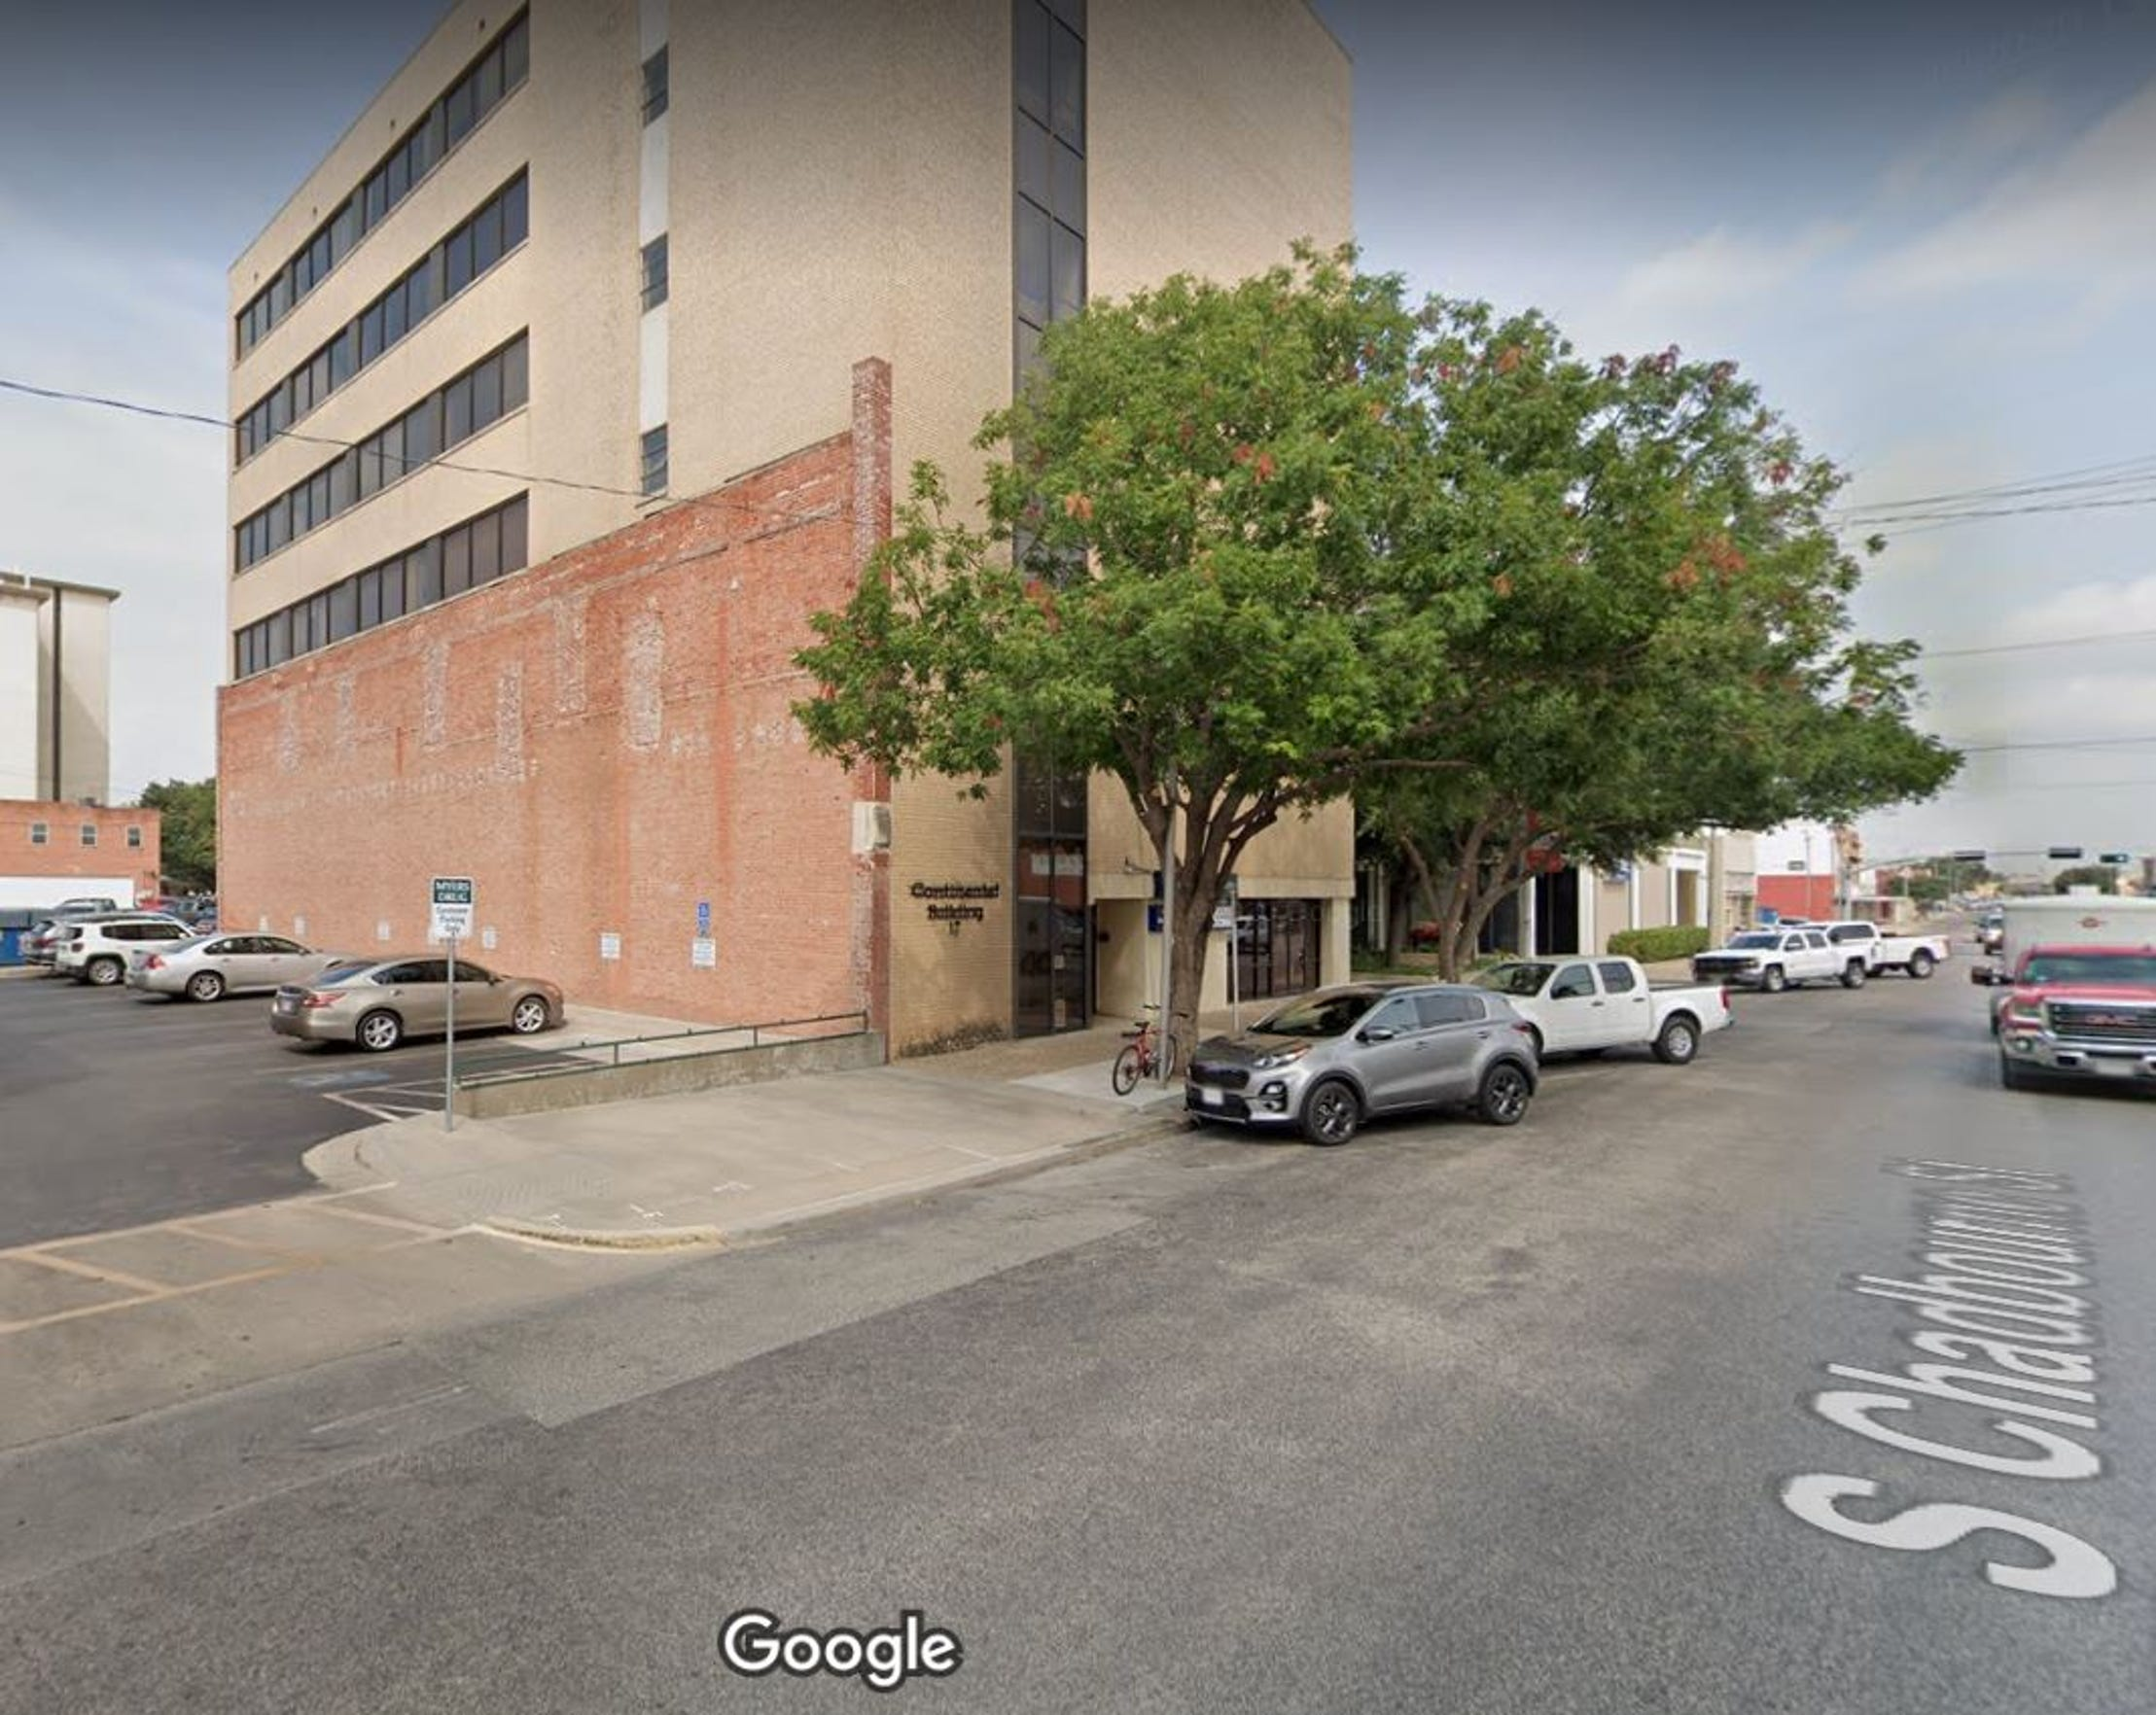 This red-brick wall forming the lower section of the Continental Building's south side is all that remains of the building that was home to the San Angelo Standard between 1925 and 1951. The red-brick portion was the Standard's north wall.